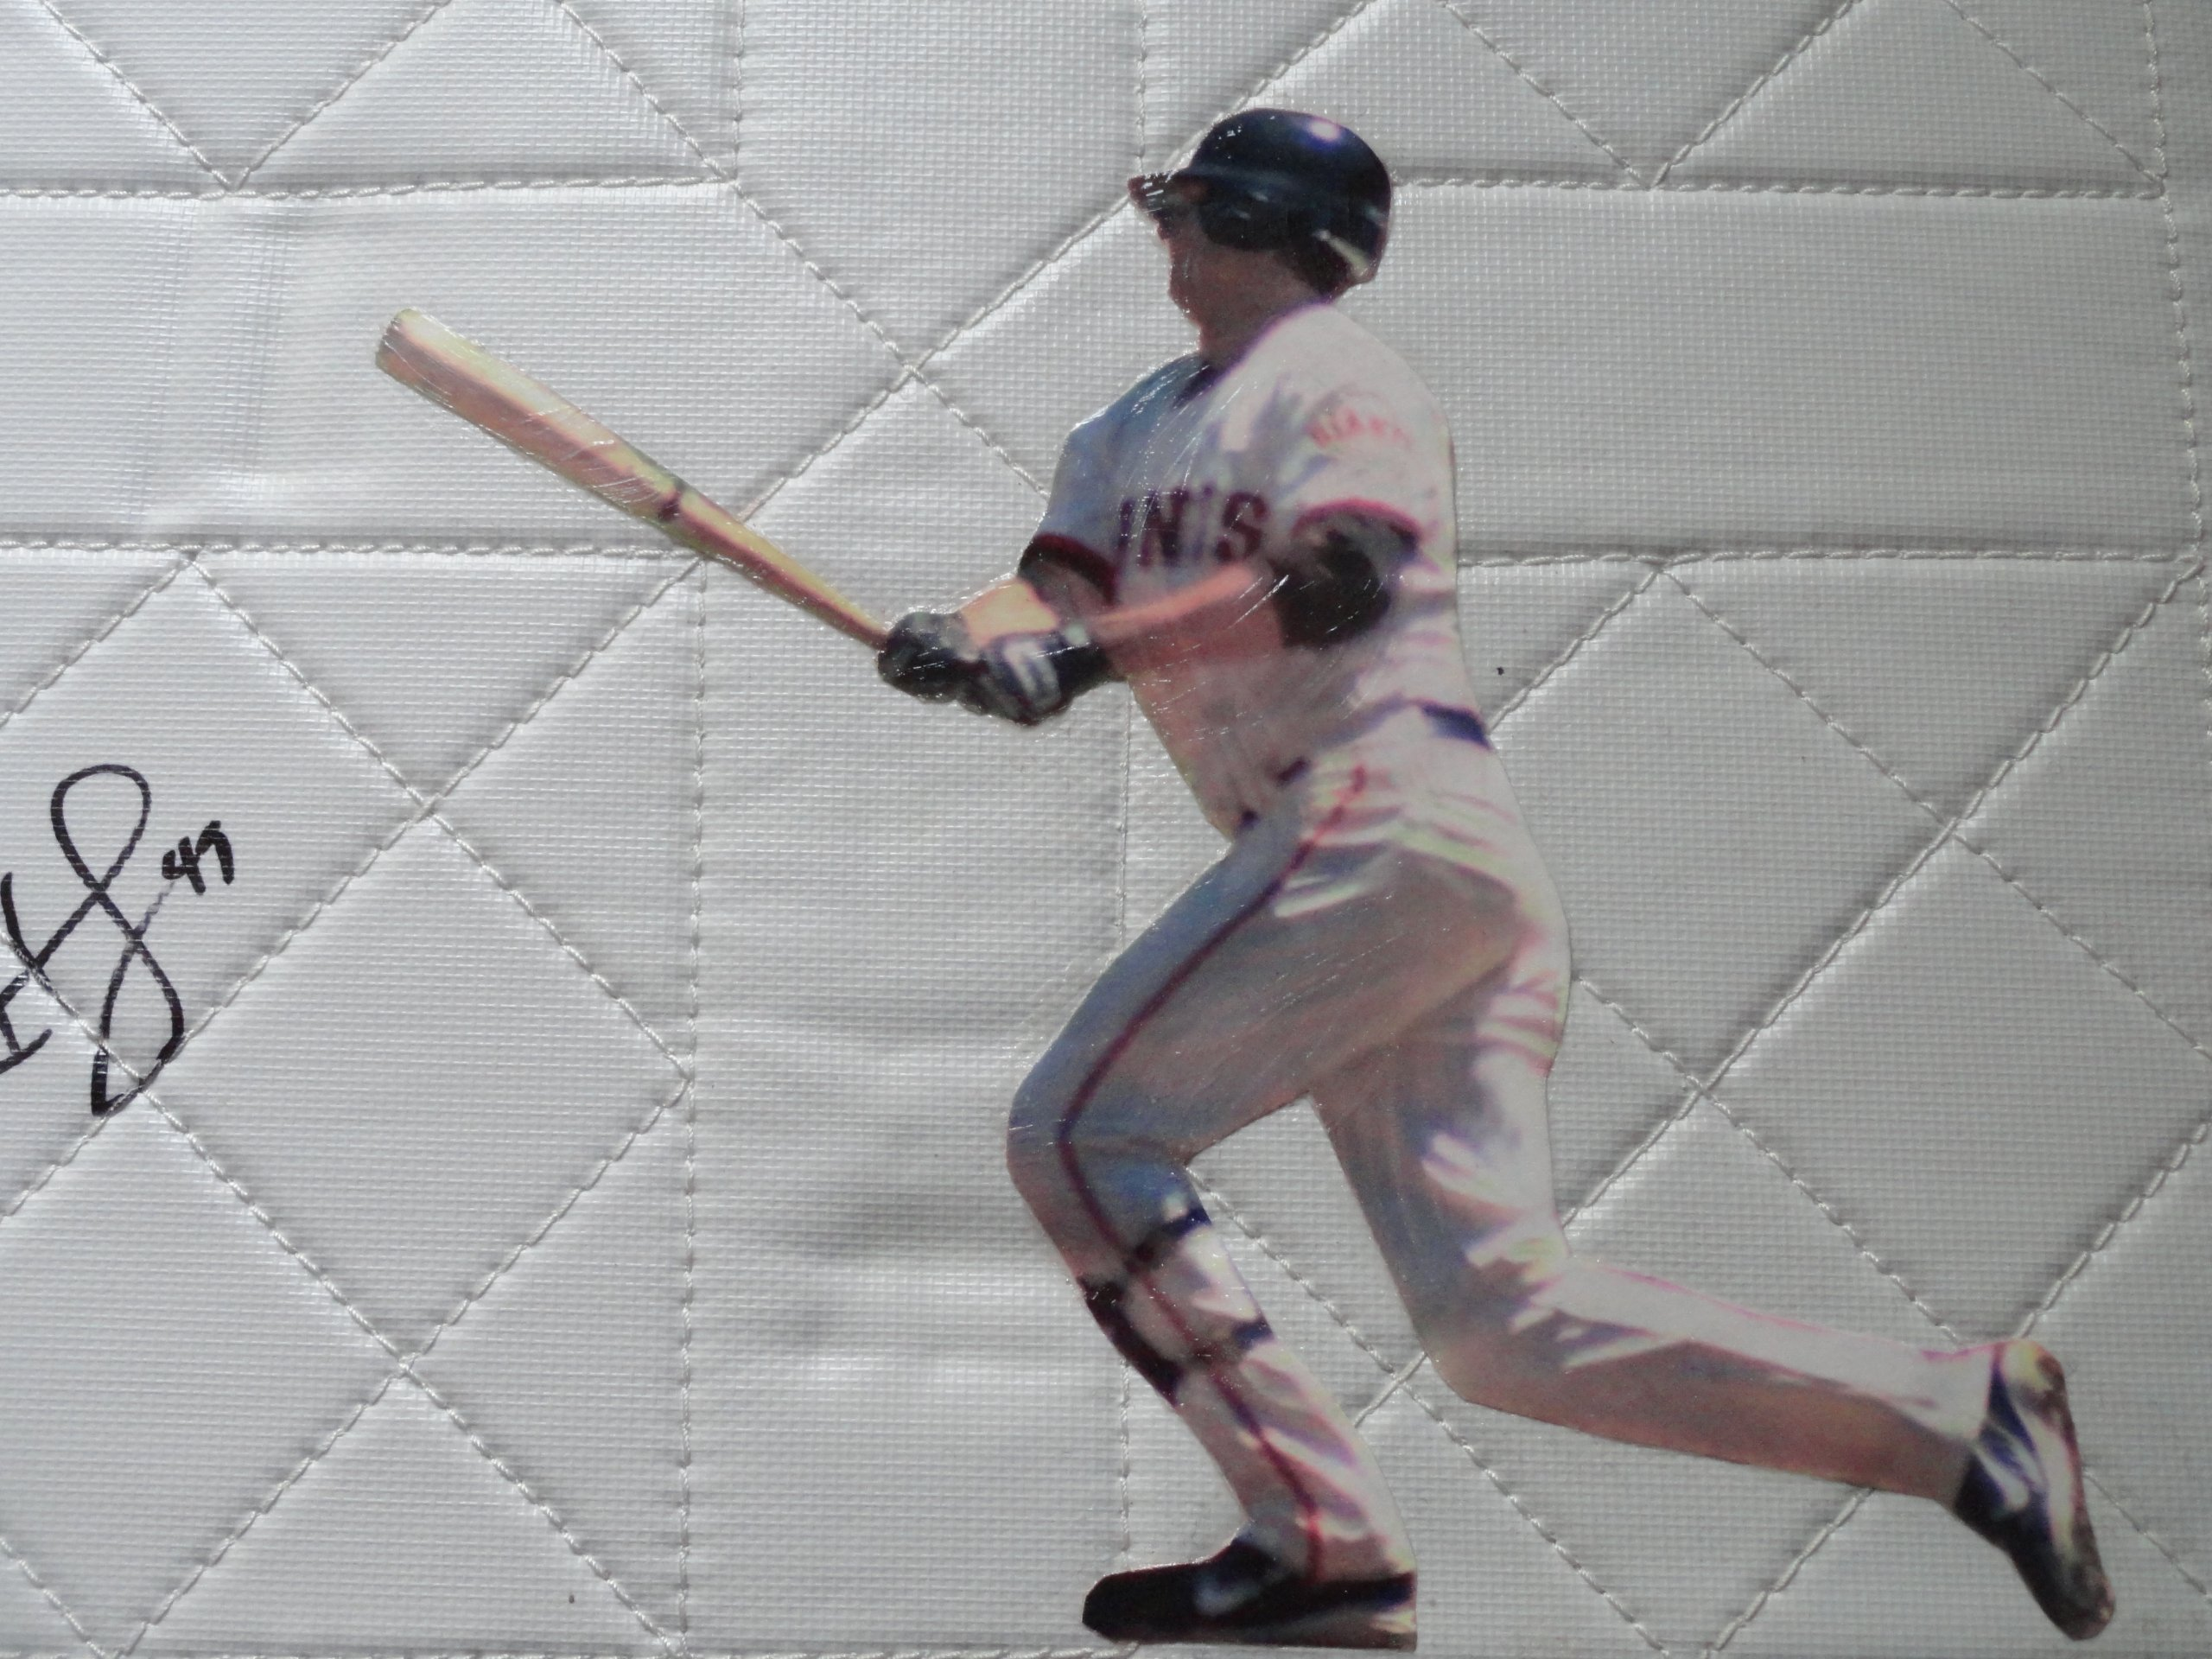 Brian Horwitz Autographed Hand Signed San Francisco Giants Photo Full Size Baseball Base with Proof Photo of Signing and COA SF Giants Collectibles